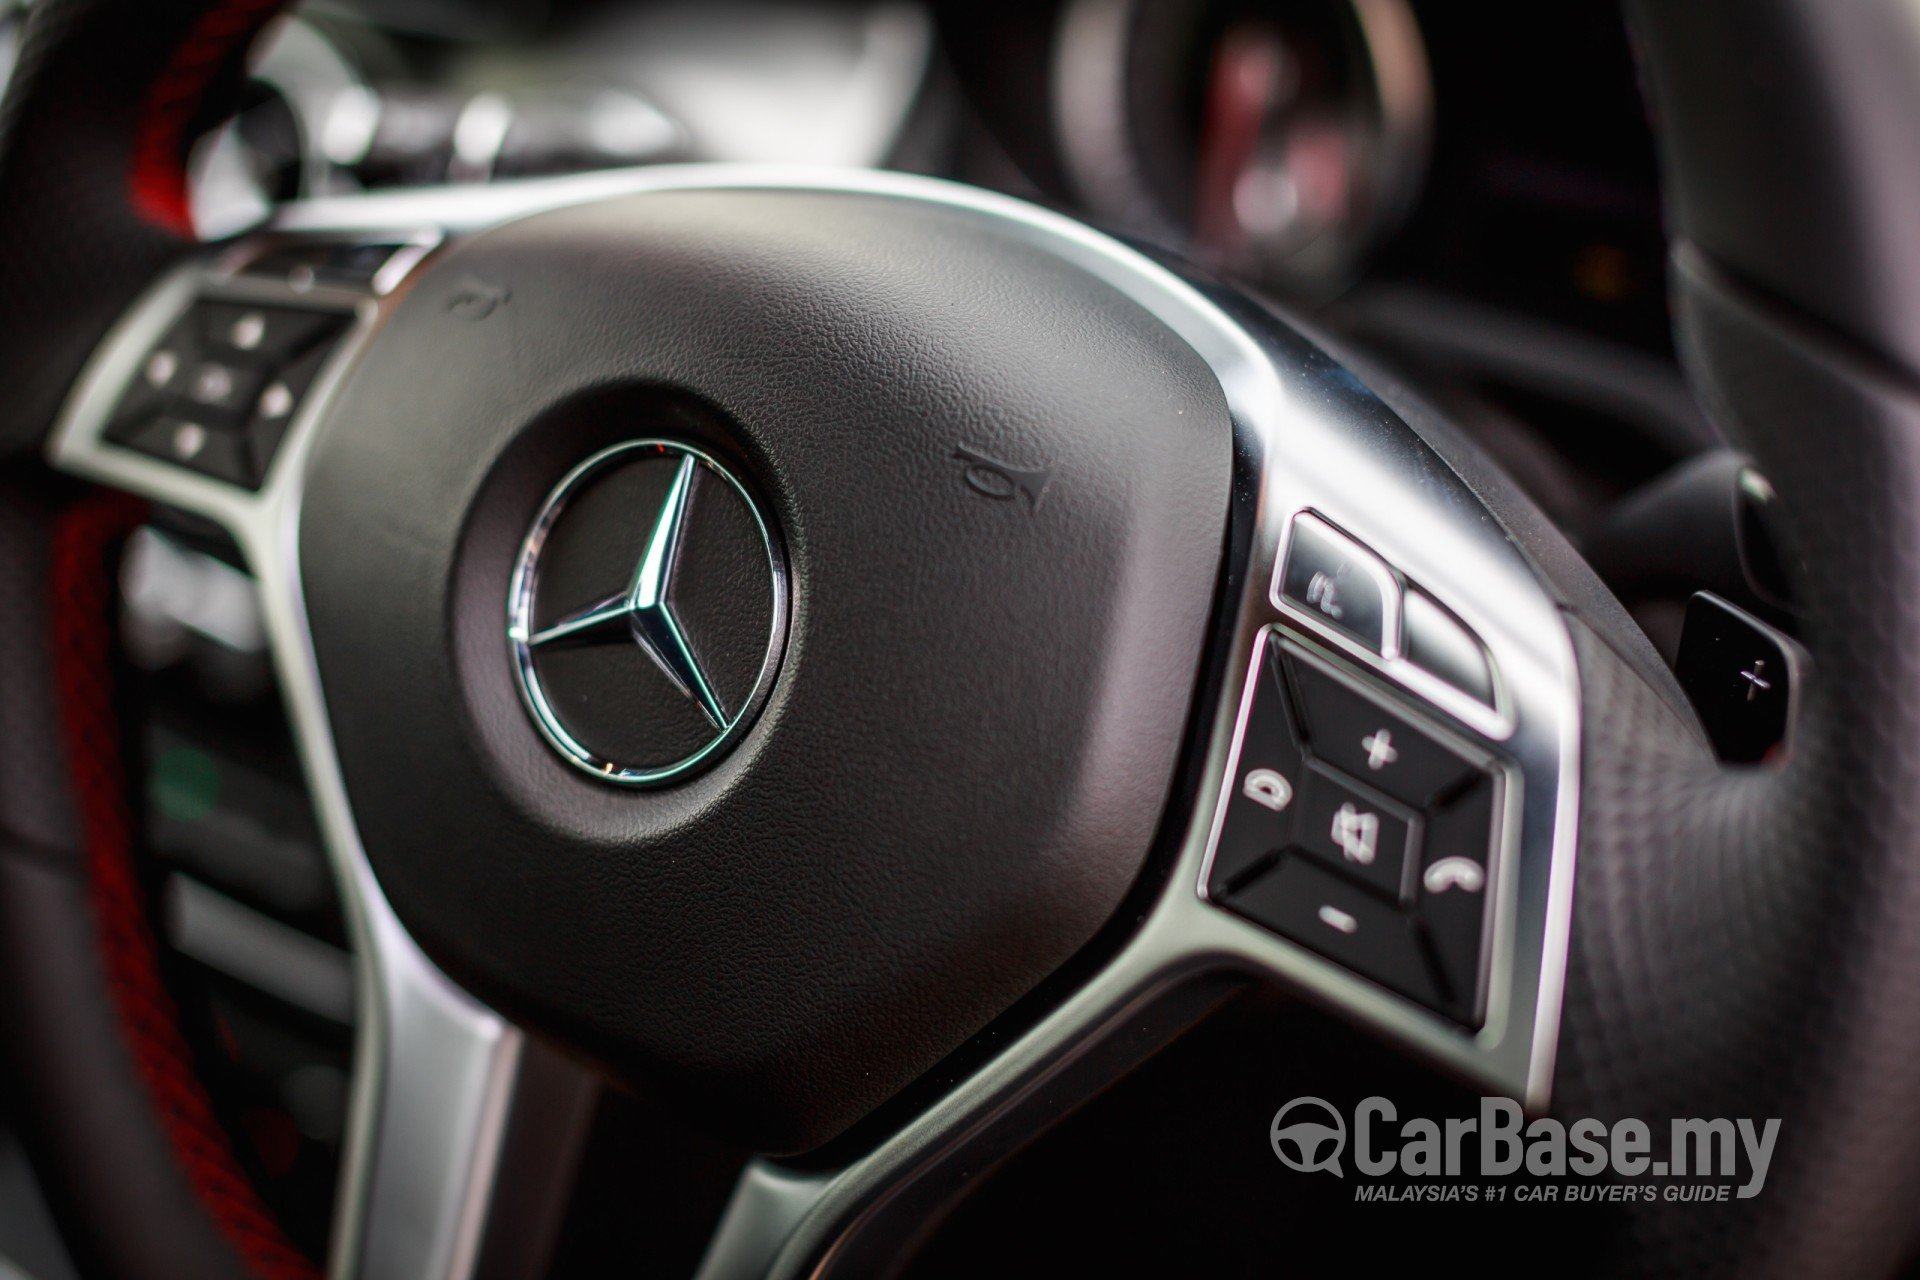 Mercedes Benz Gla X156 2014 Interior Image 16759 In Malaysia Reviews Specs Prices